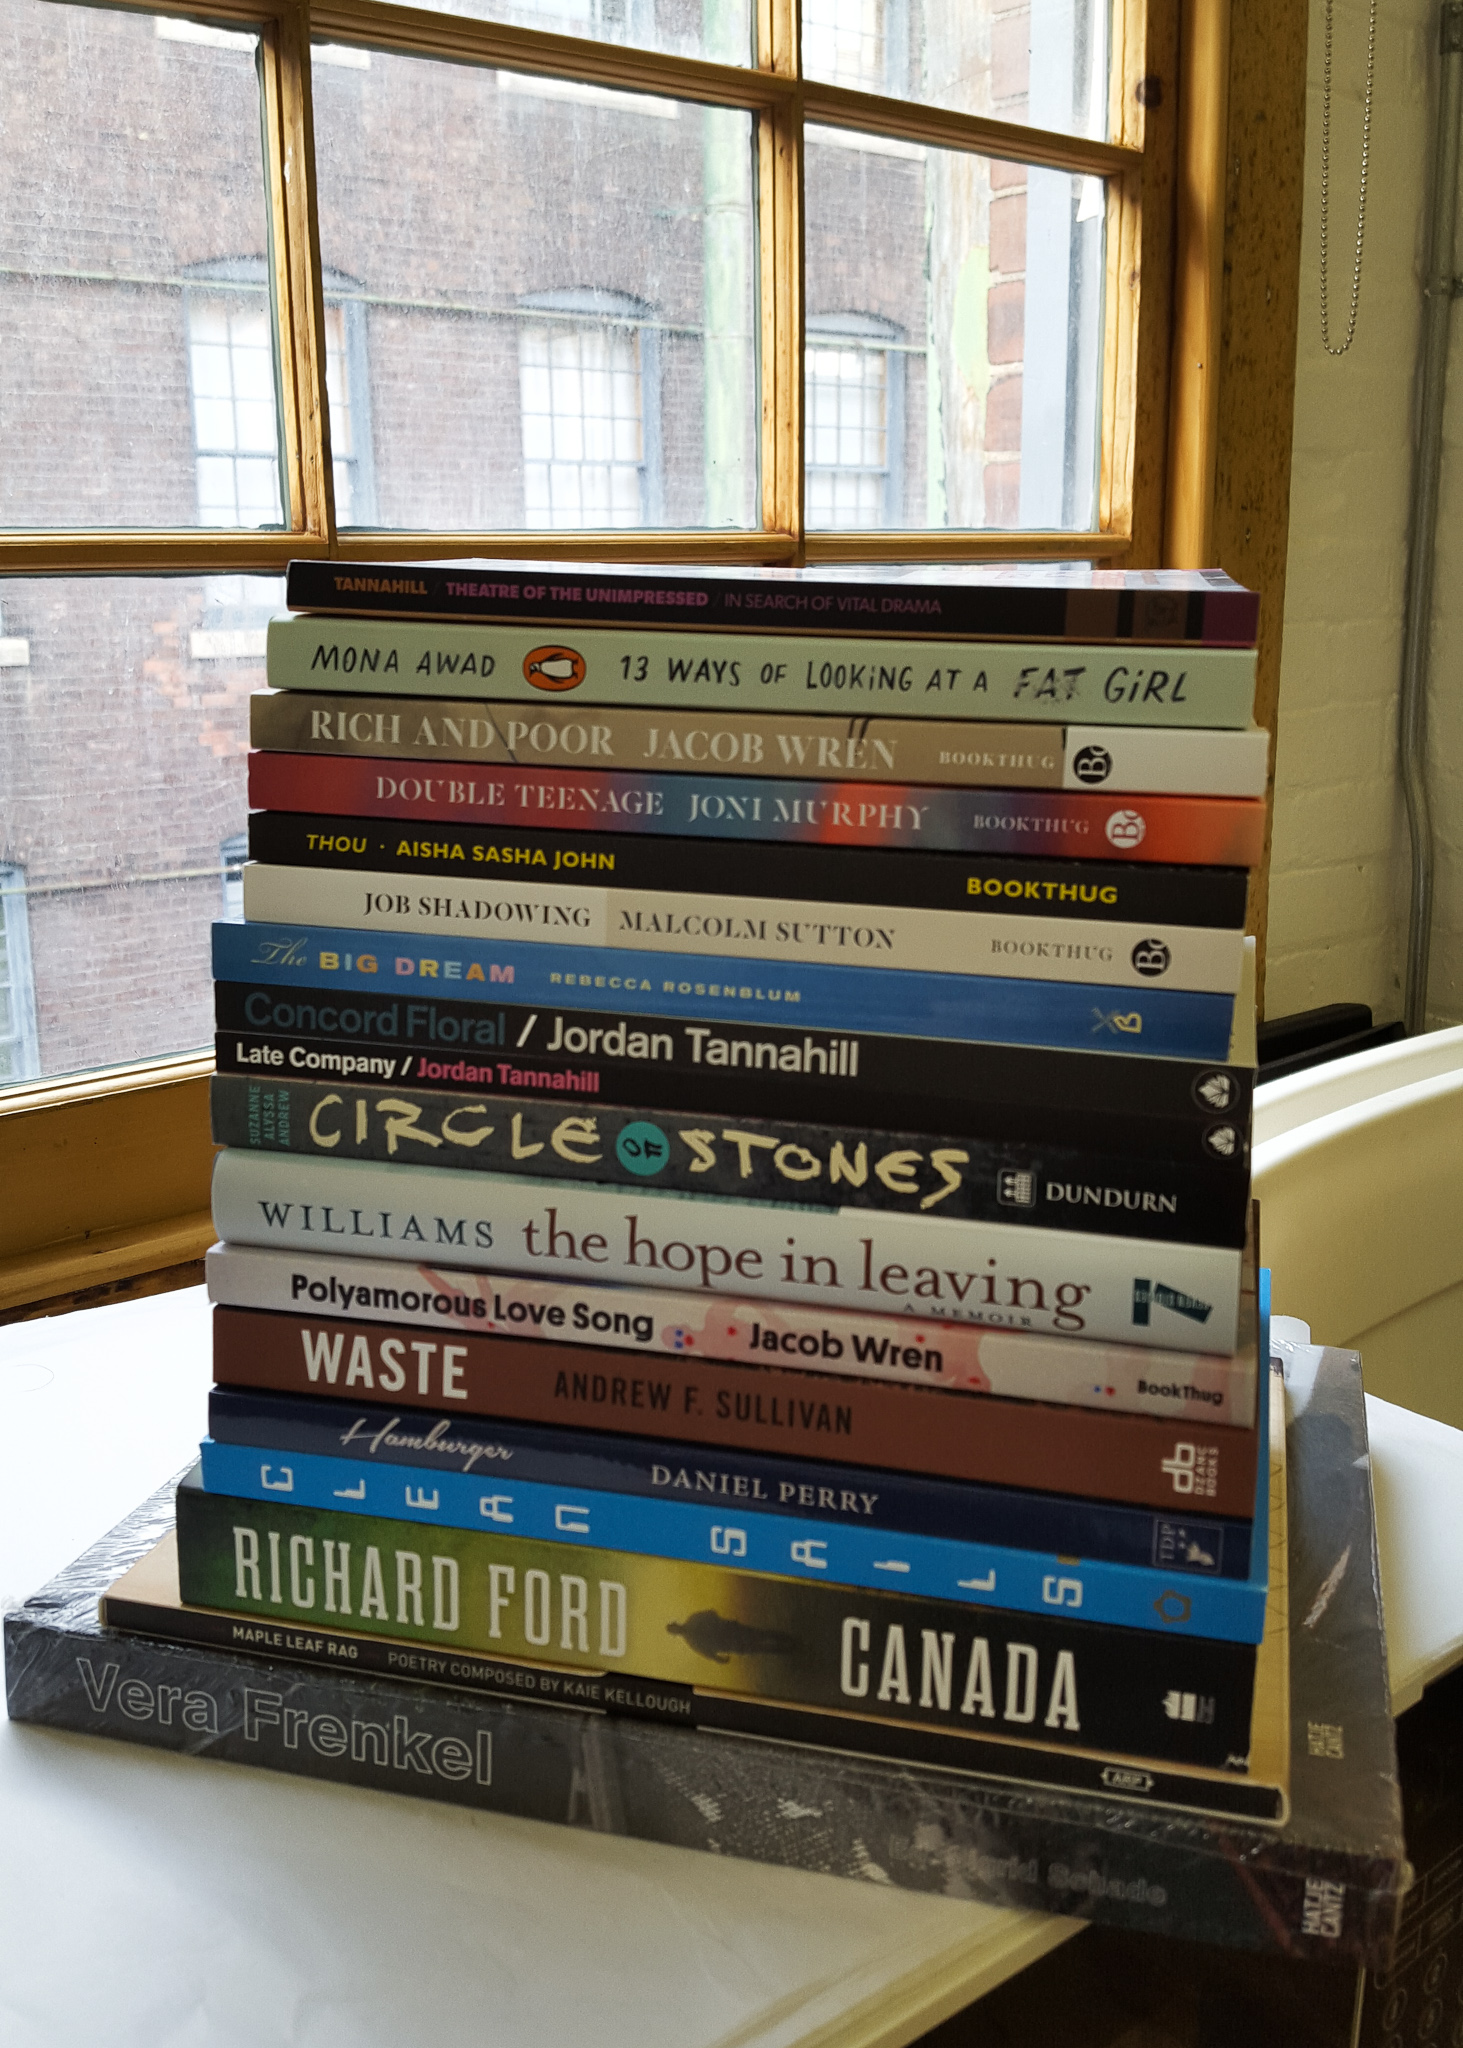 a stack of books near window